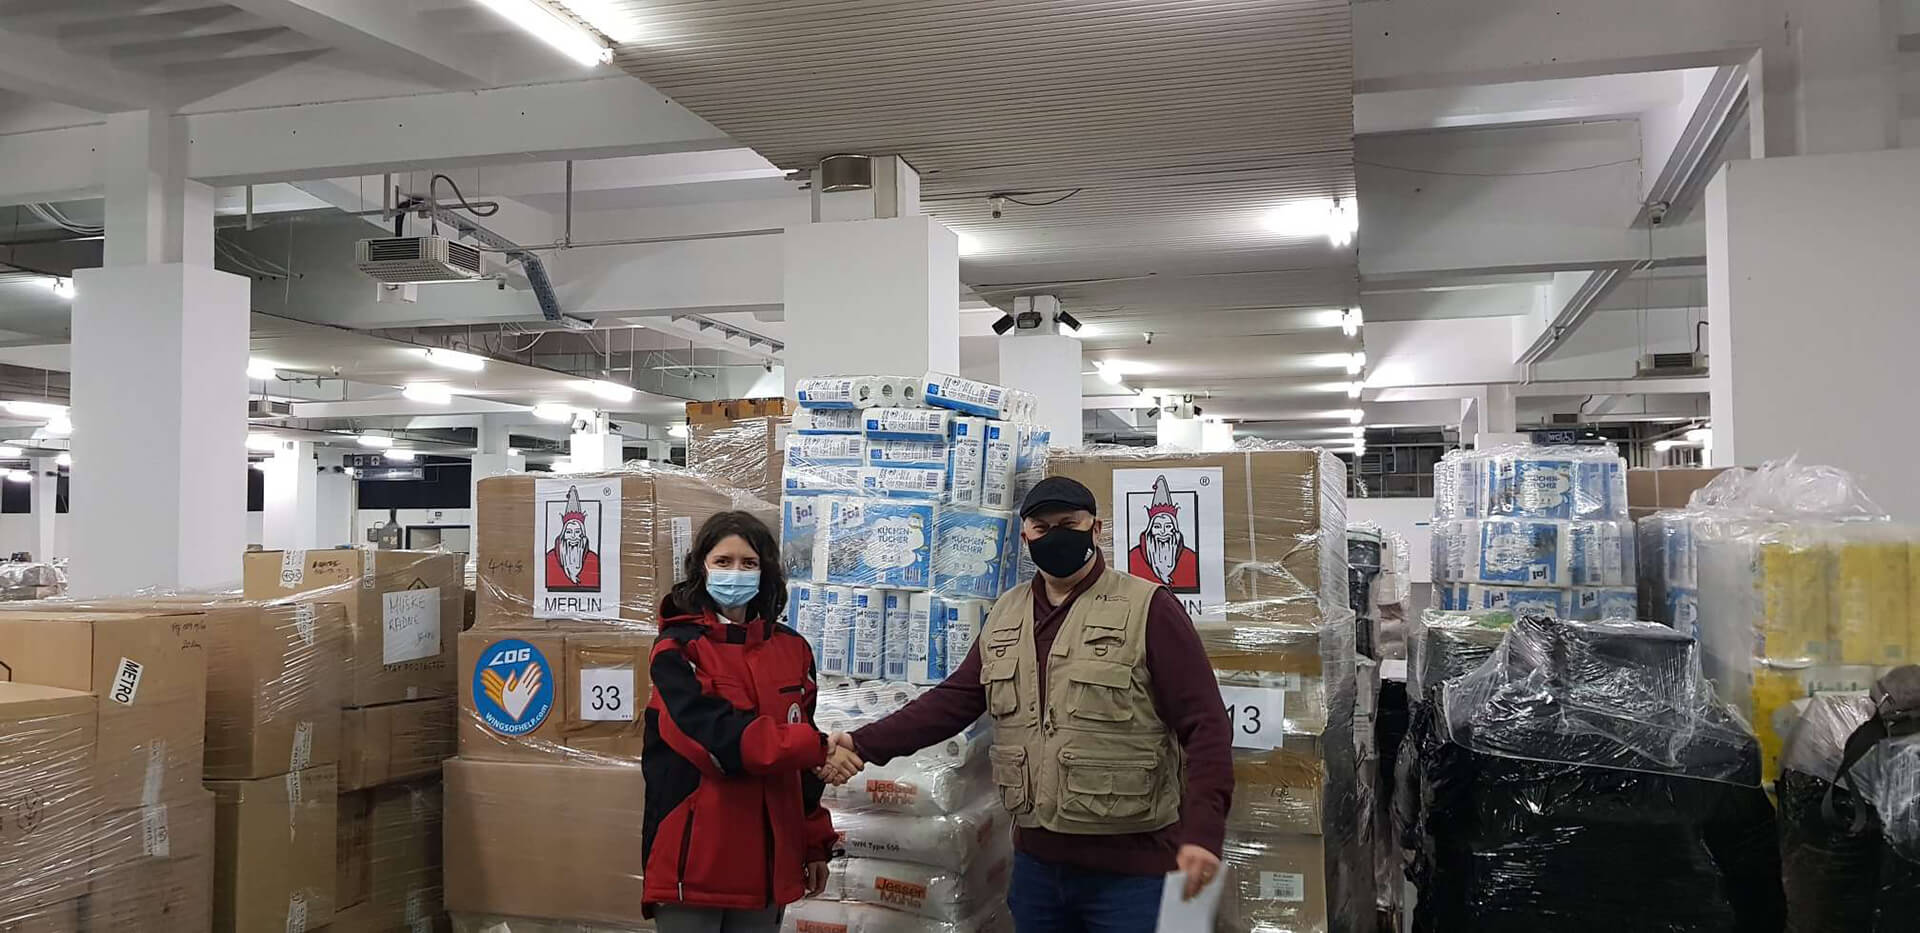 Within hours of the earthquake in central Croatia, we deployed more than $50,000 worth of PPE to support Croatian health authorities involved in relief efforts.